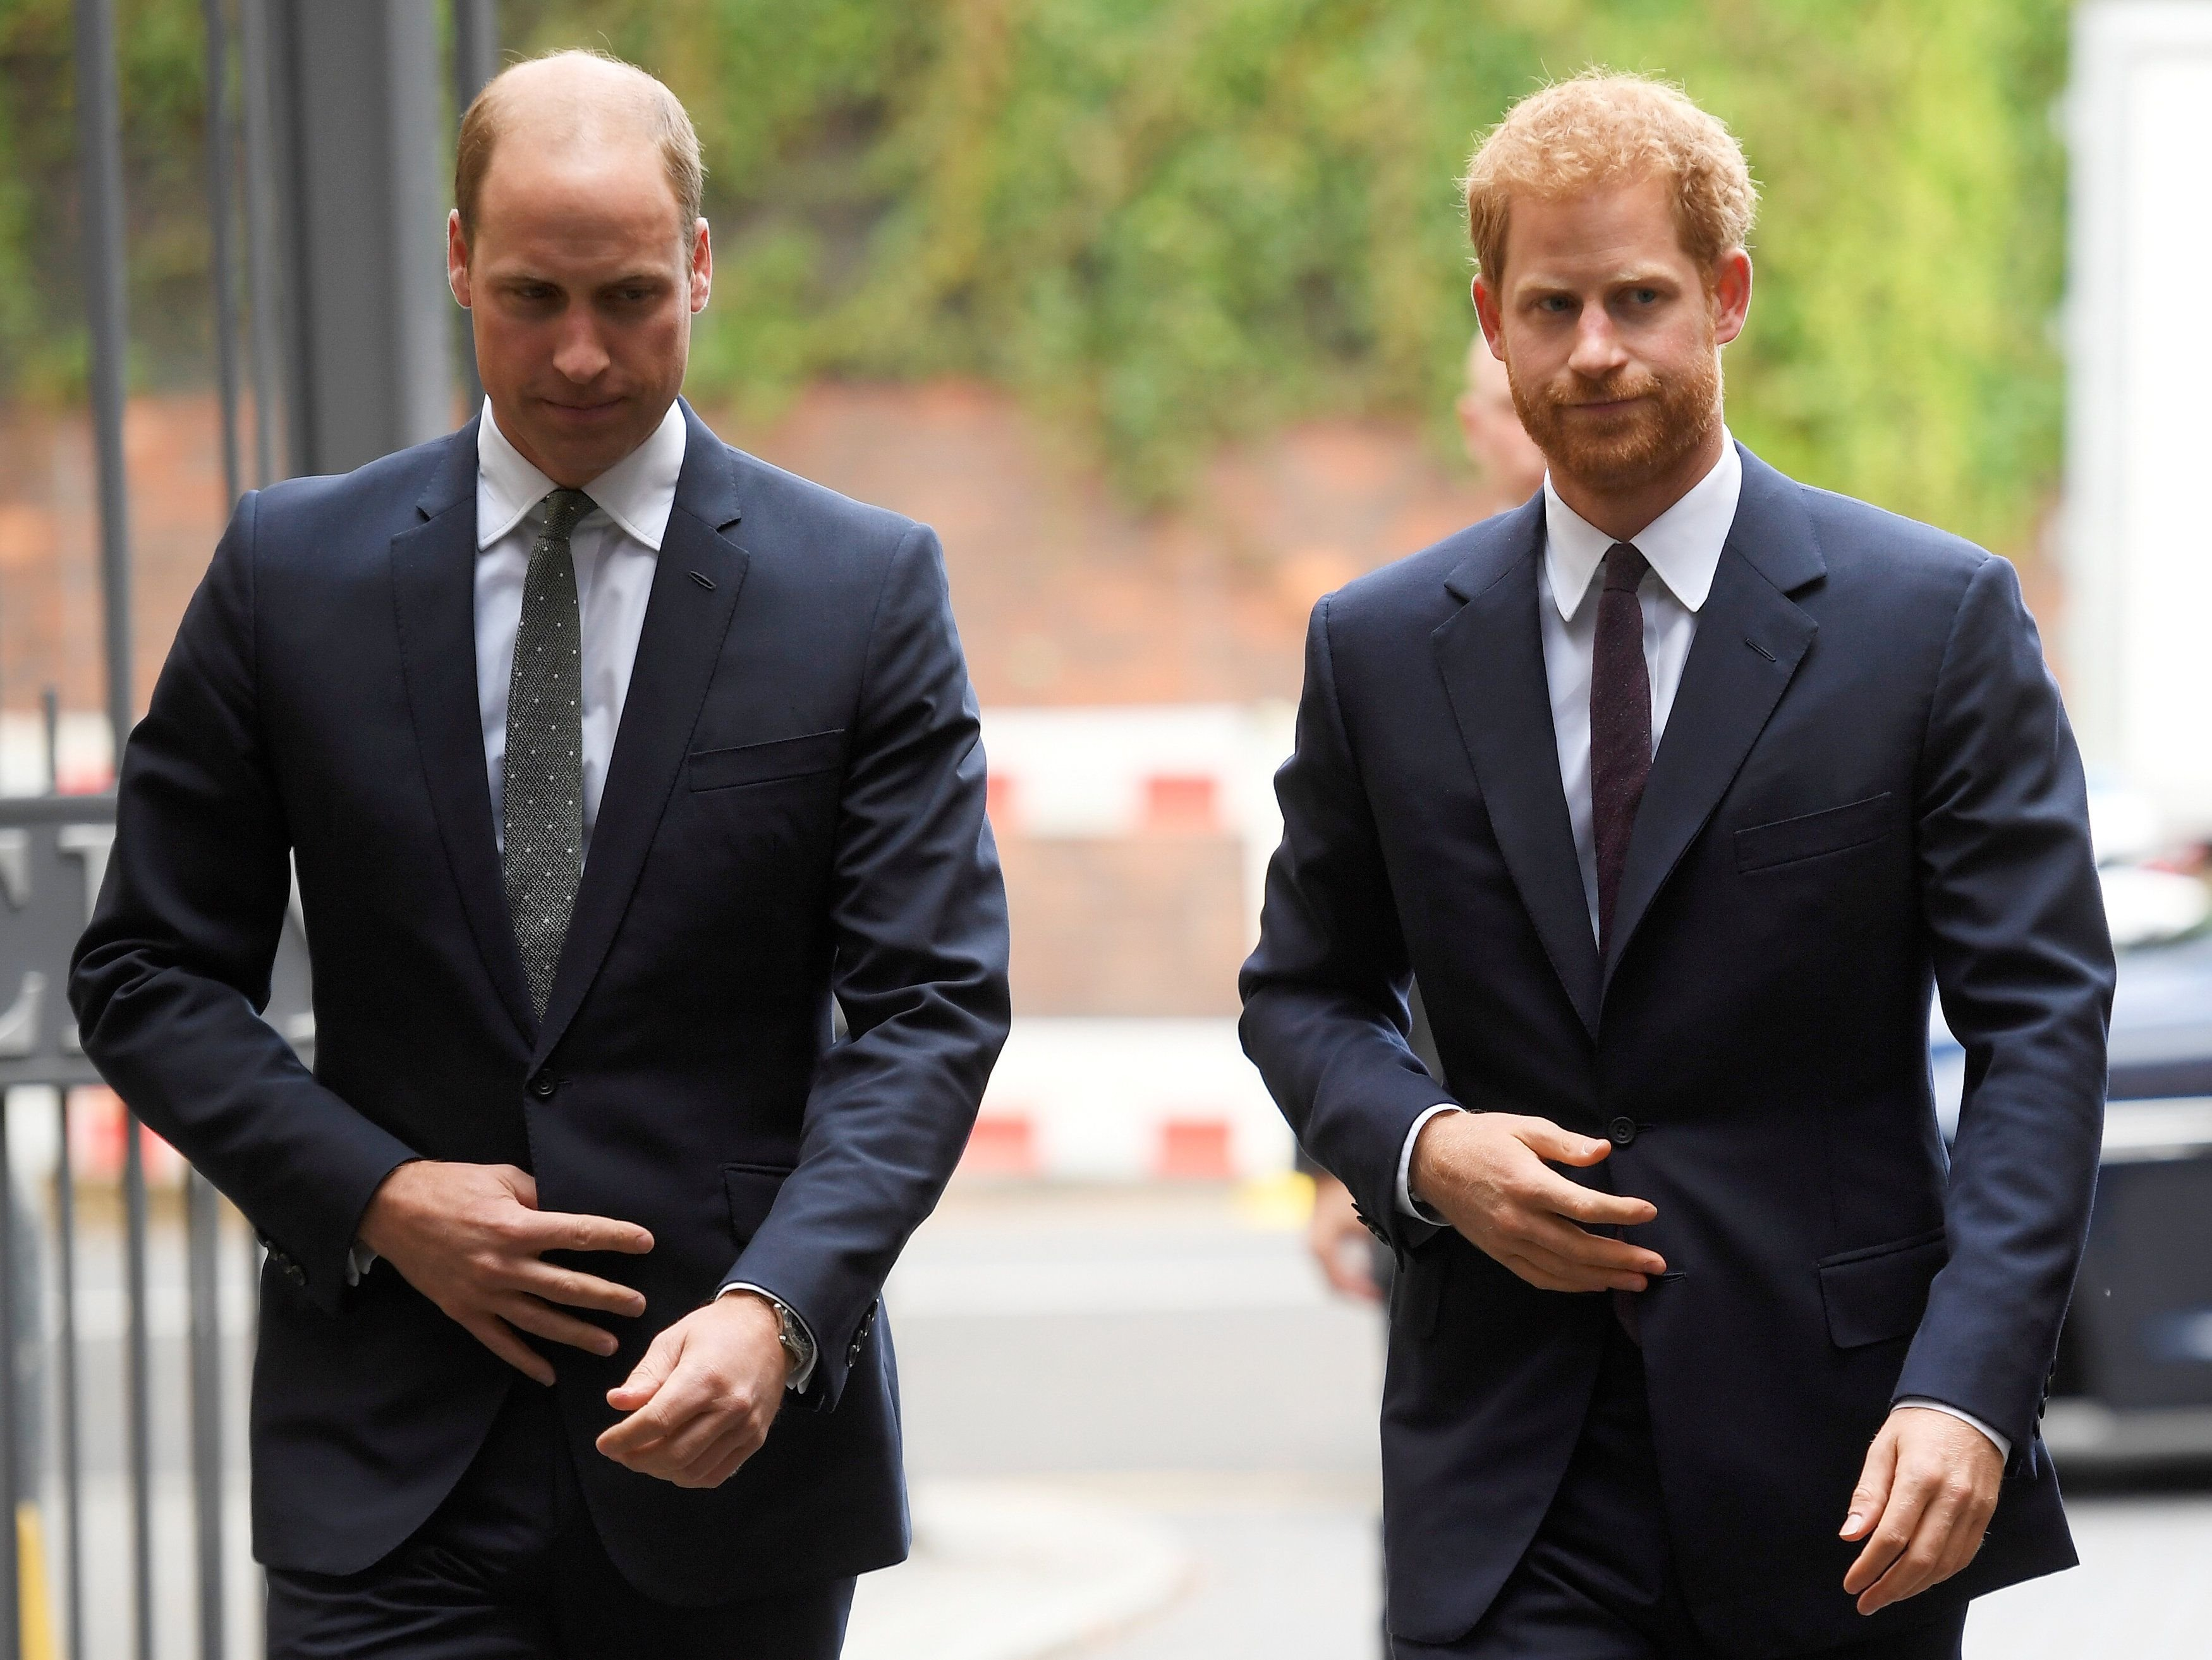 Prince William and Prince Harry during a visit to the Royal Foundation Support4Grenfell community hub on September 5, 2017 in London, England. | Source: Getty Images